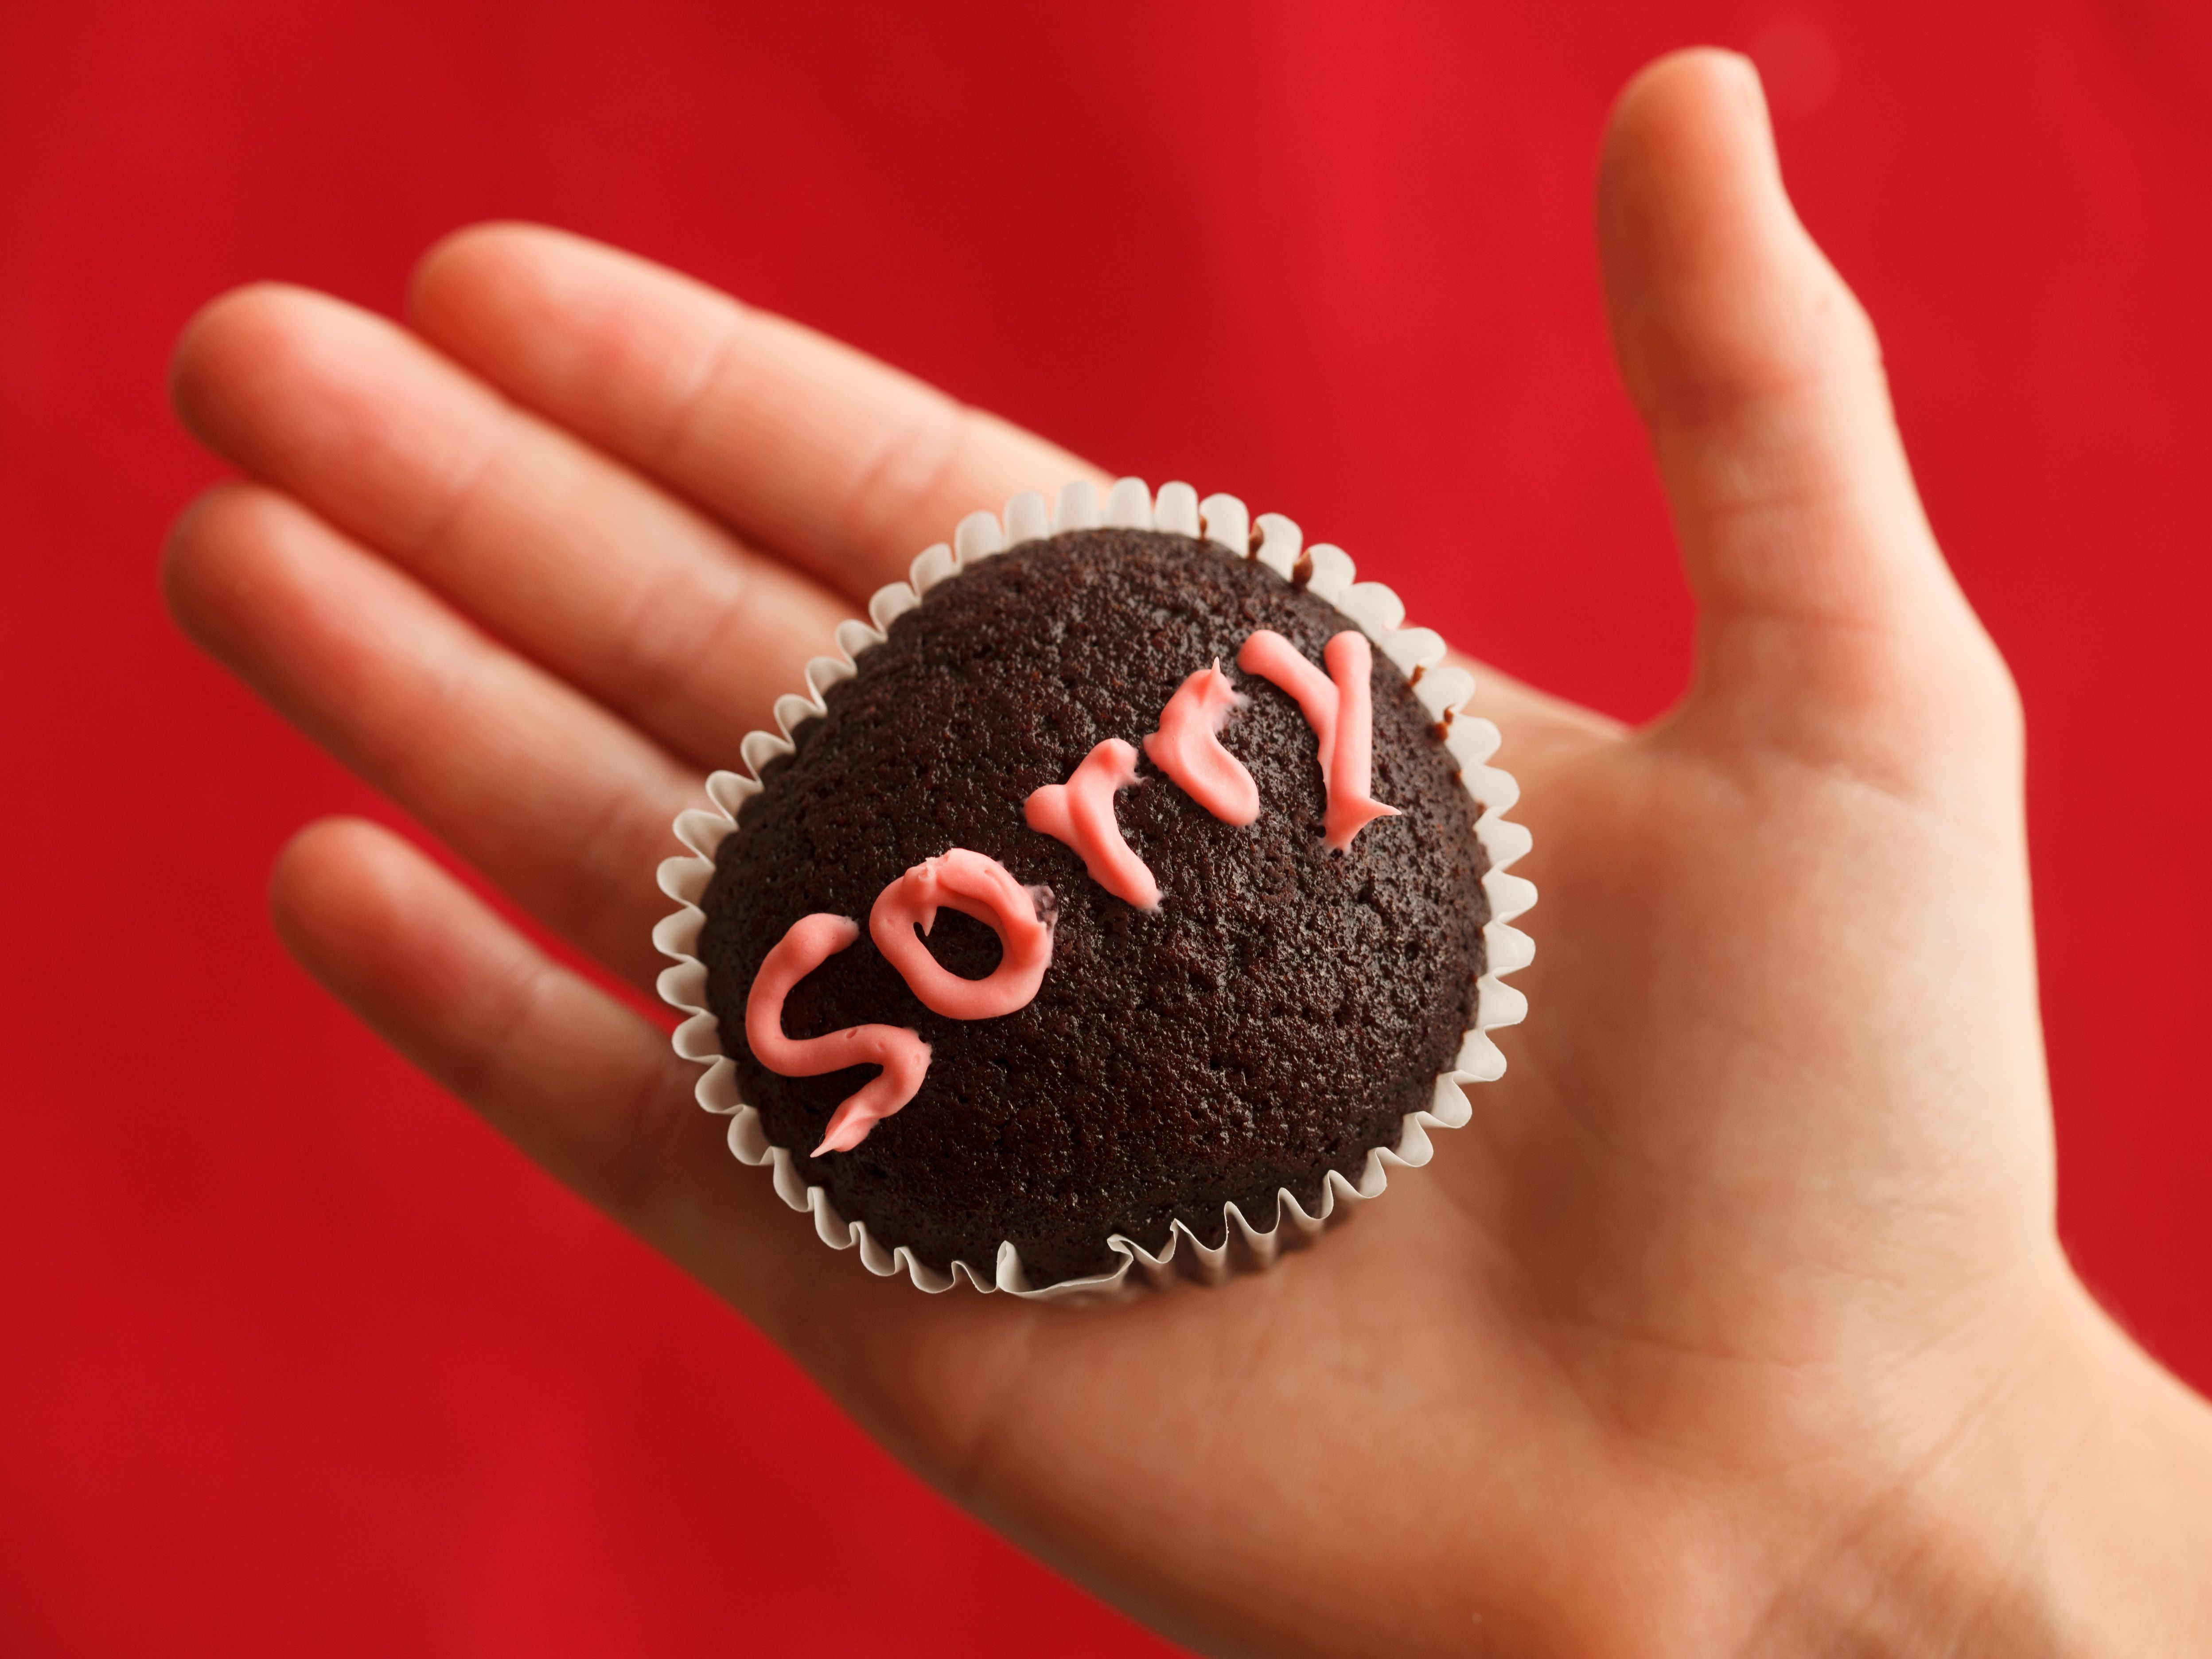 How To Apologize And Say I M Sorry In German The shorthand slang that used to be like a learned second language has become as common as everyday english. thoughtco